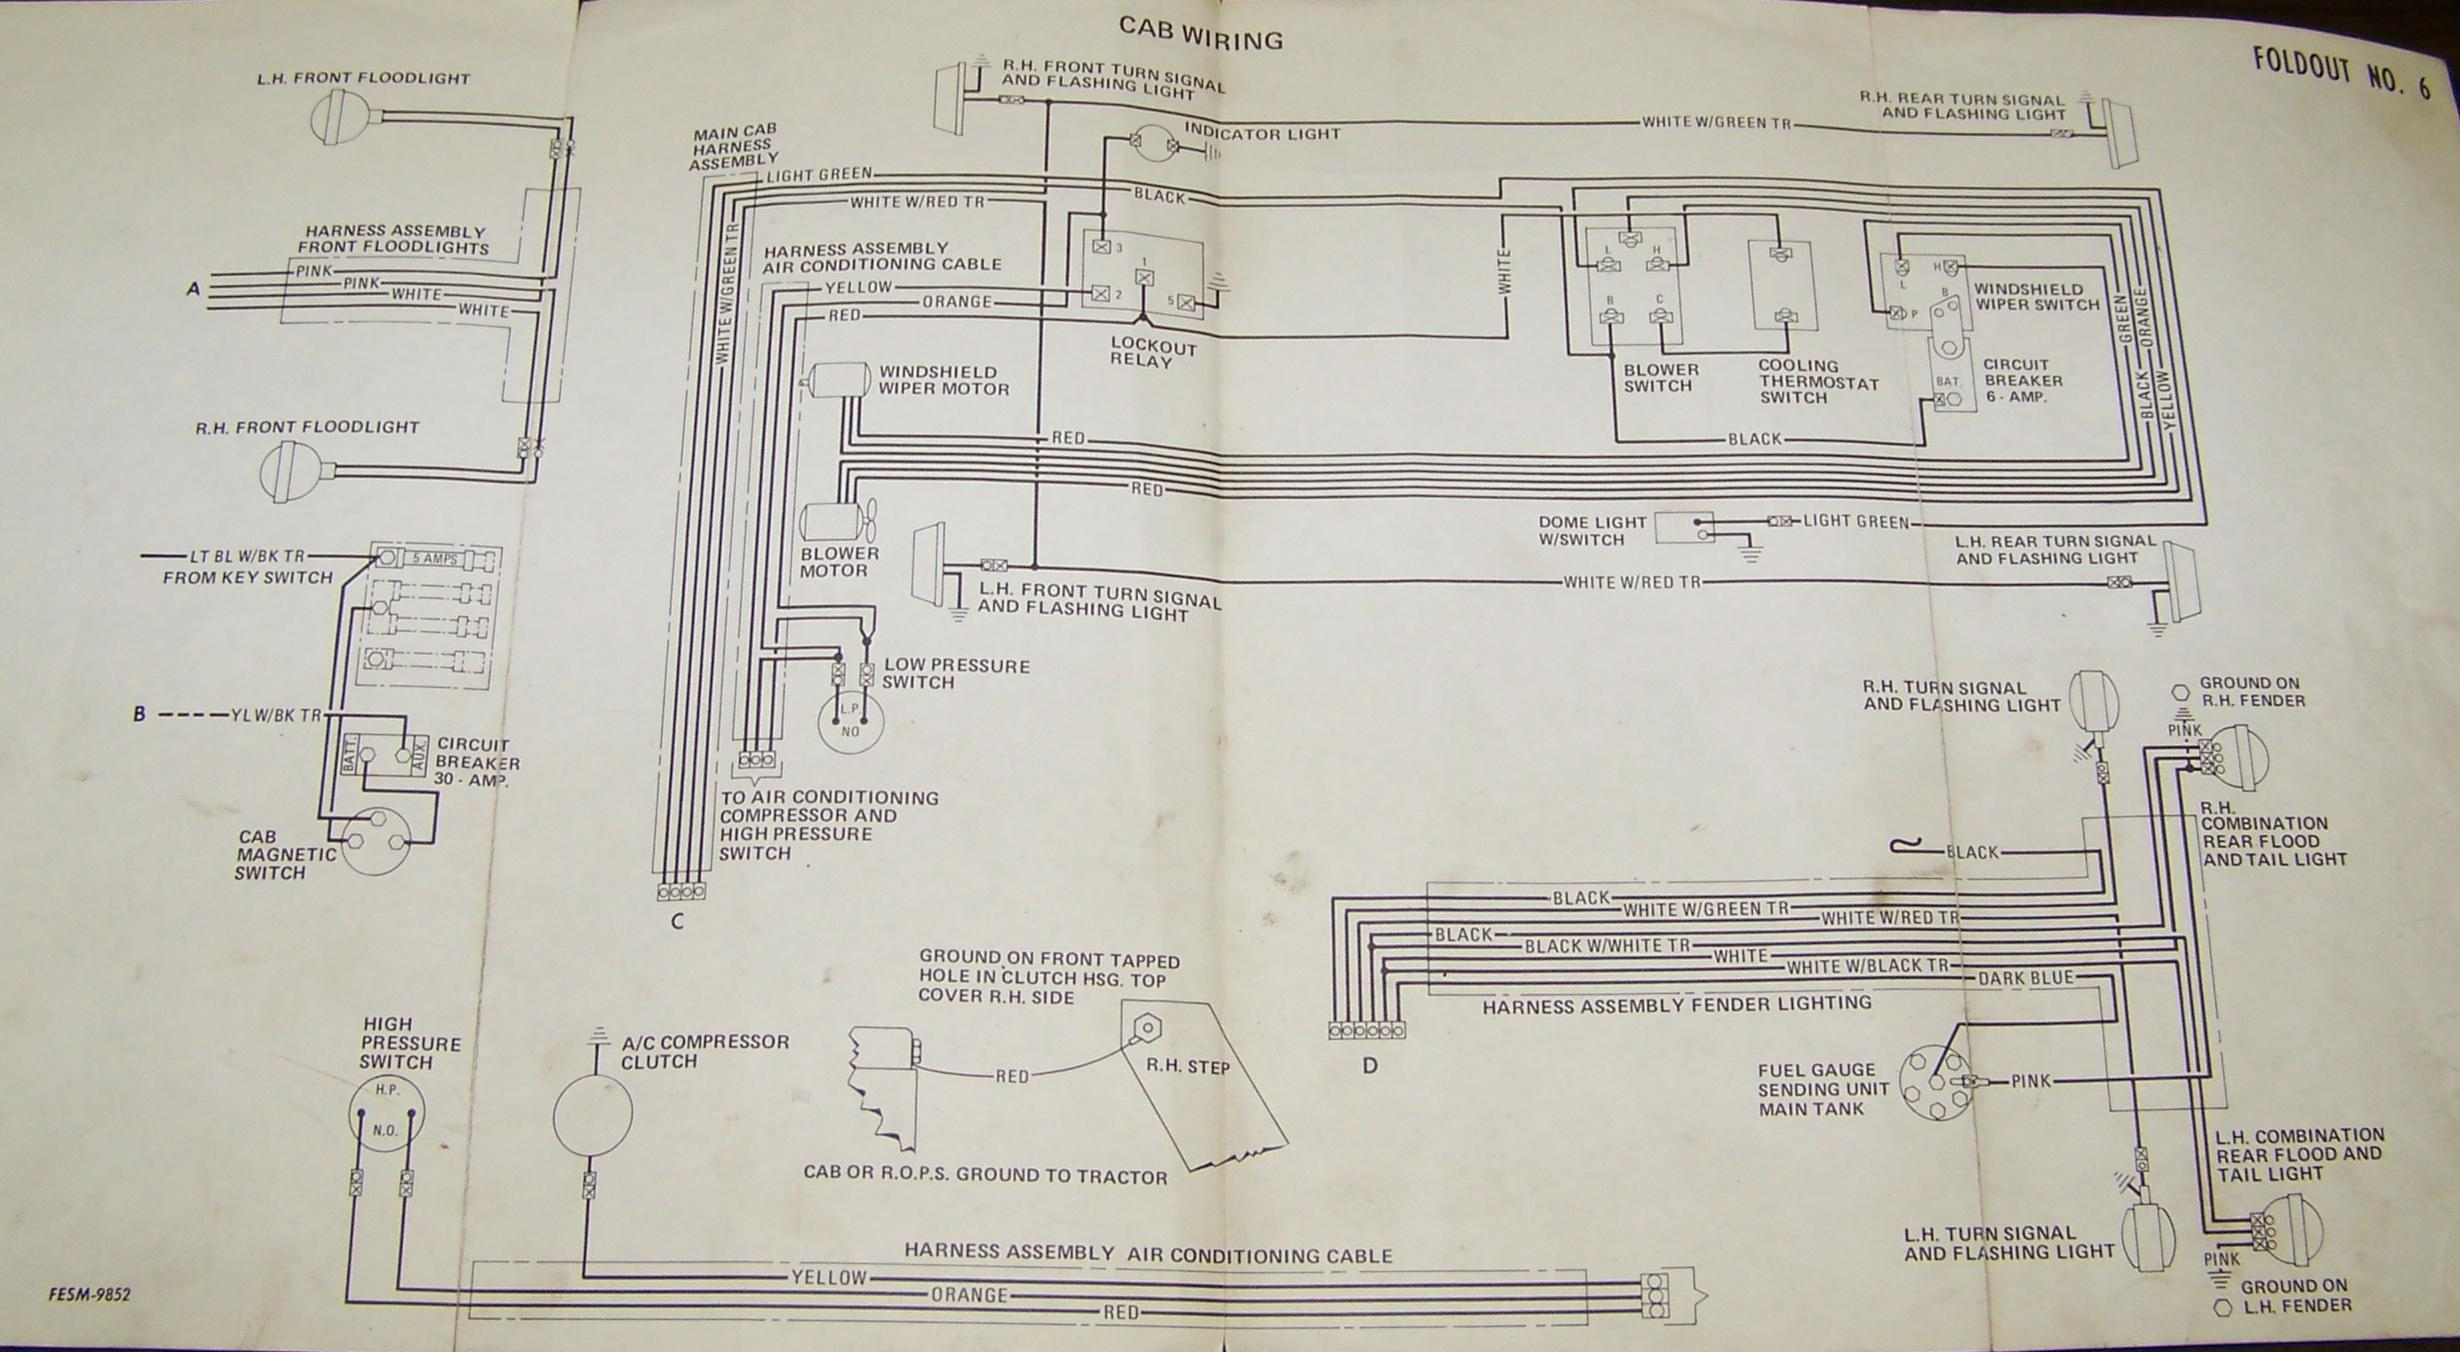 86series6 carter & gruenewald co inc ih farmall tractor electrical ih wiring diagrams at eliteediting.co